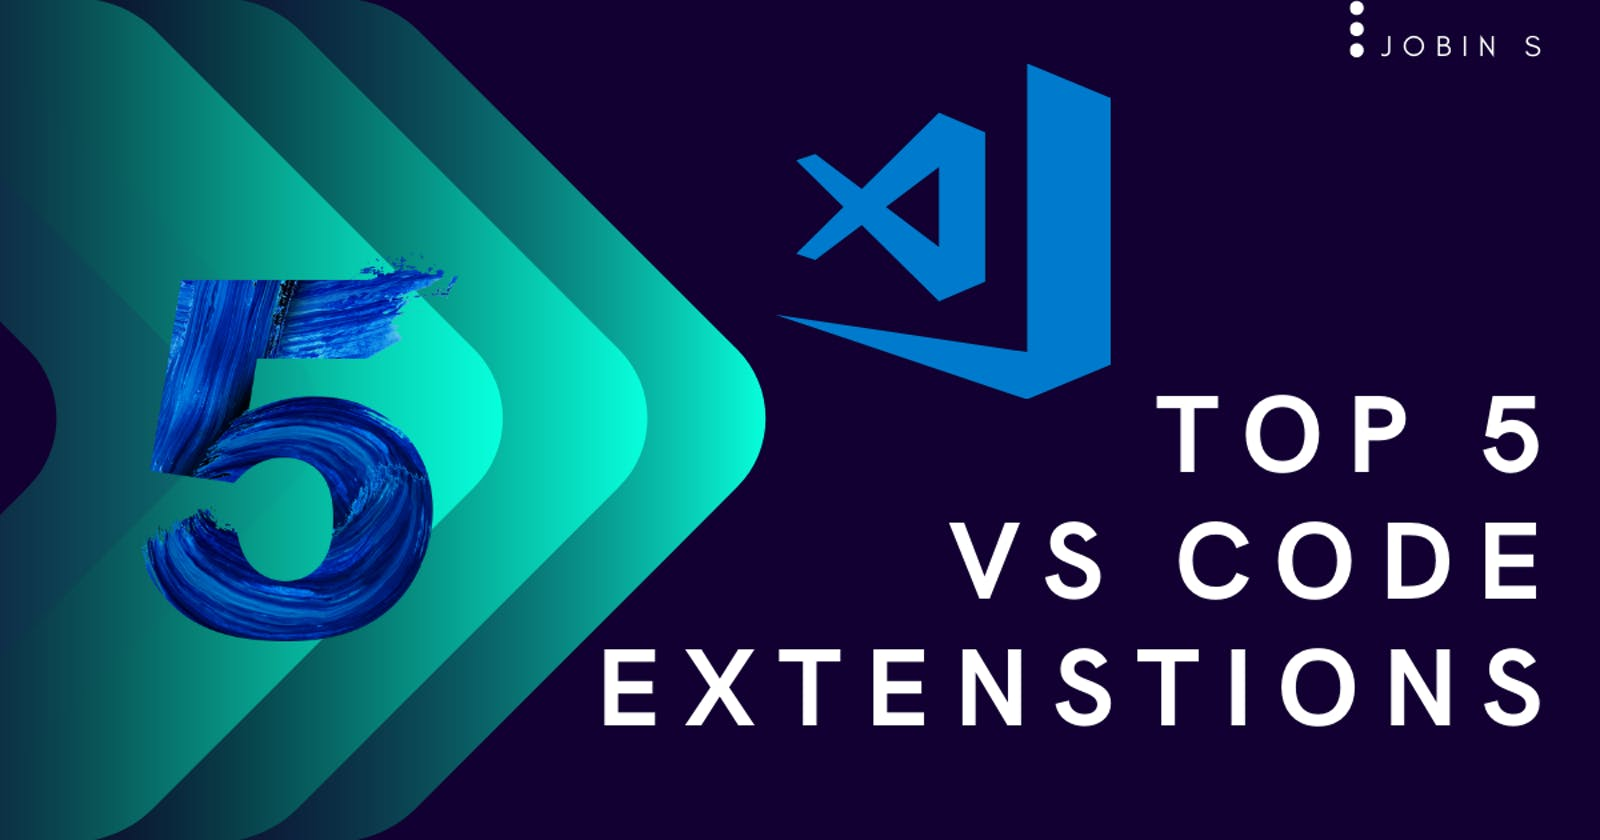 Top 5 VS Code Extension for Web Developers In 2021